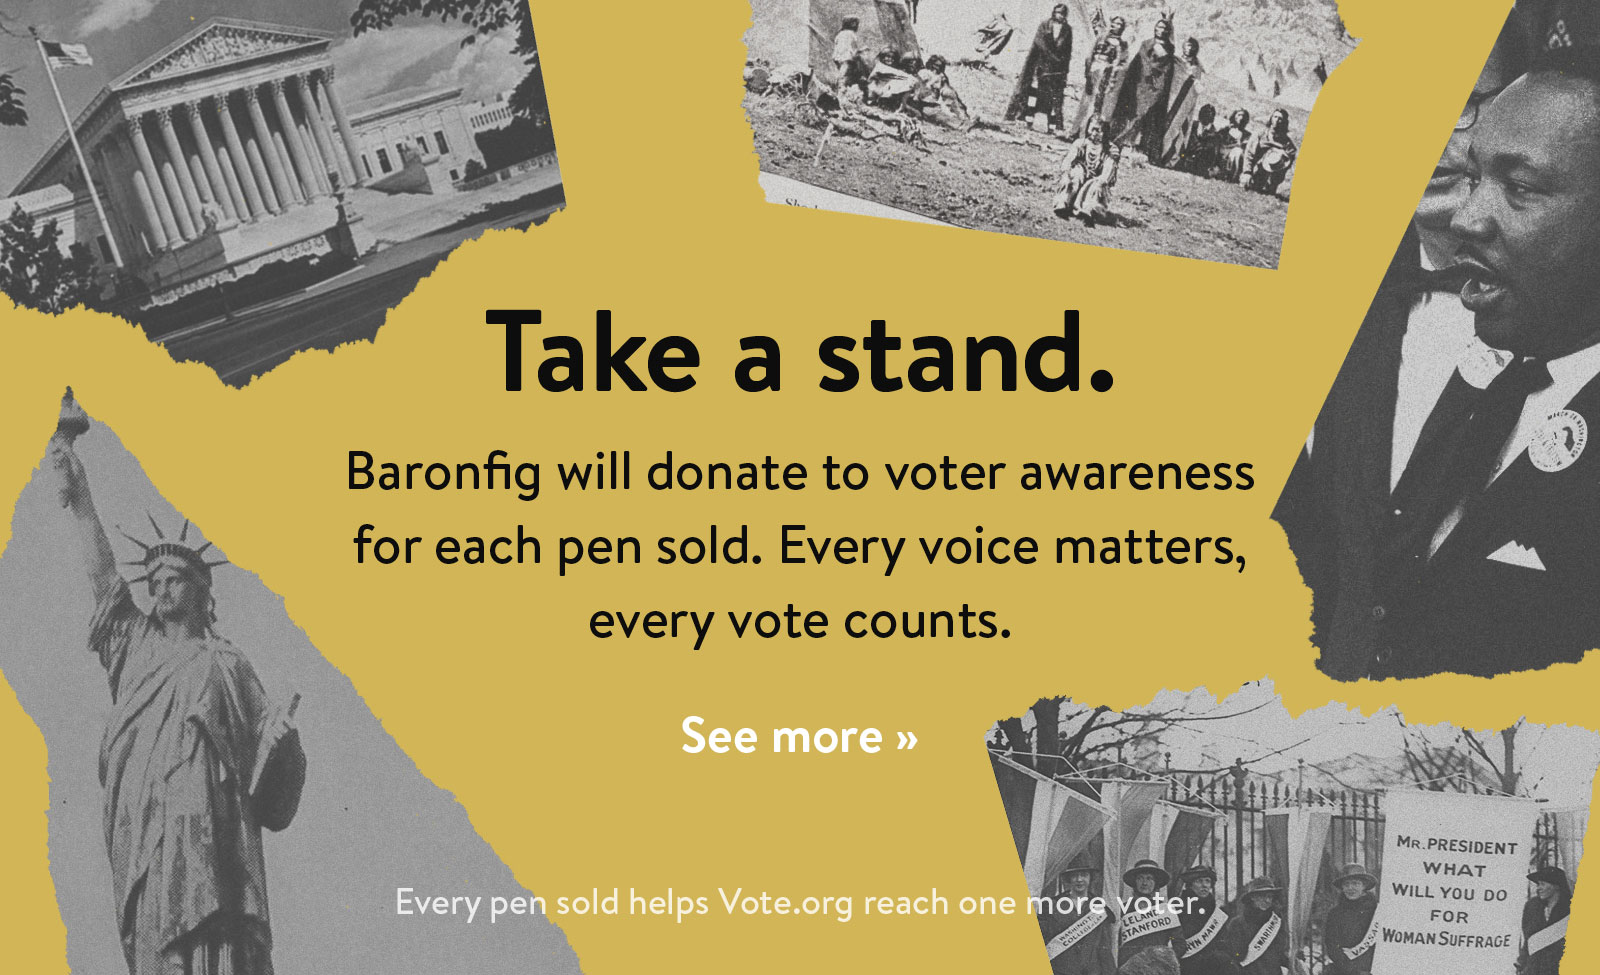 Baronfig will donate to voter awareness for each pen sold. See more ?